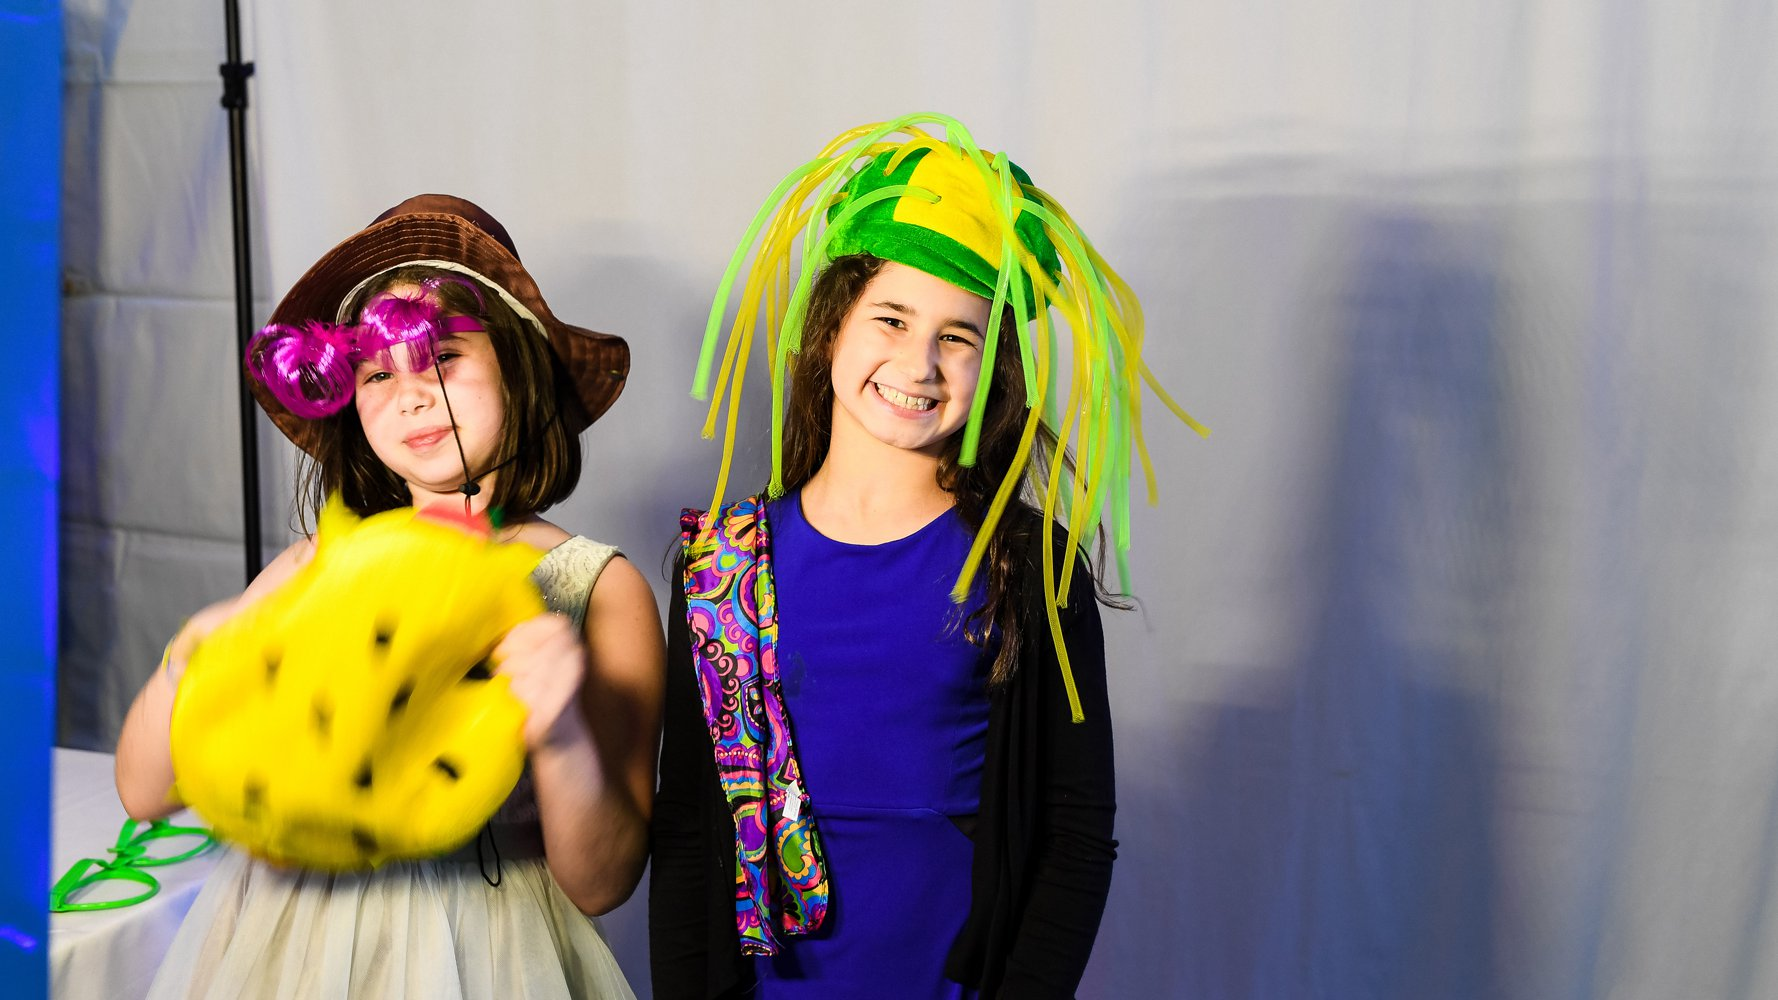 Bar Mitzvah kids posing for photo booth